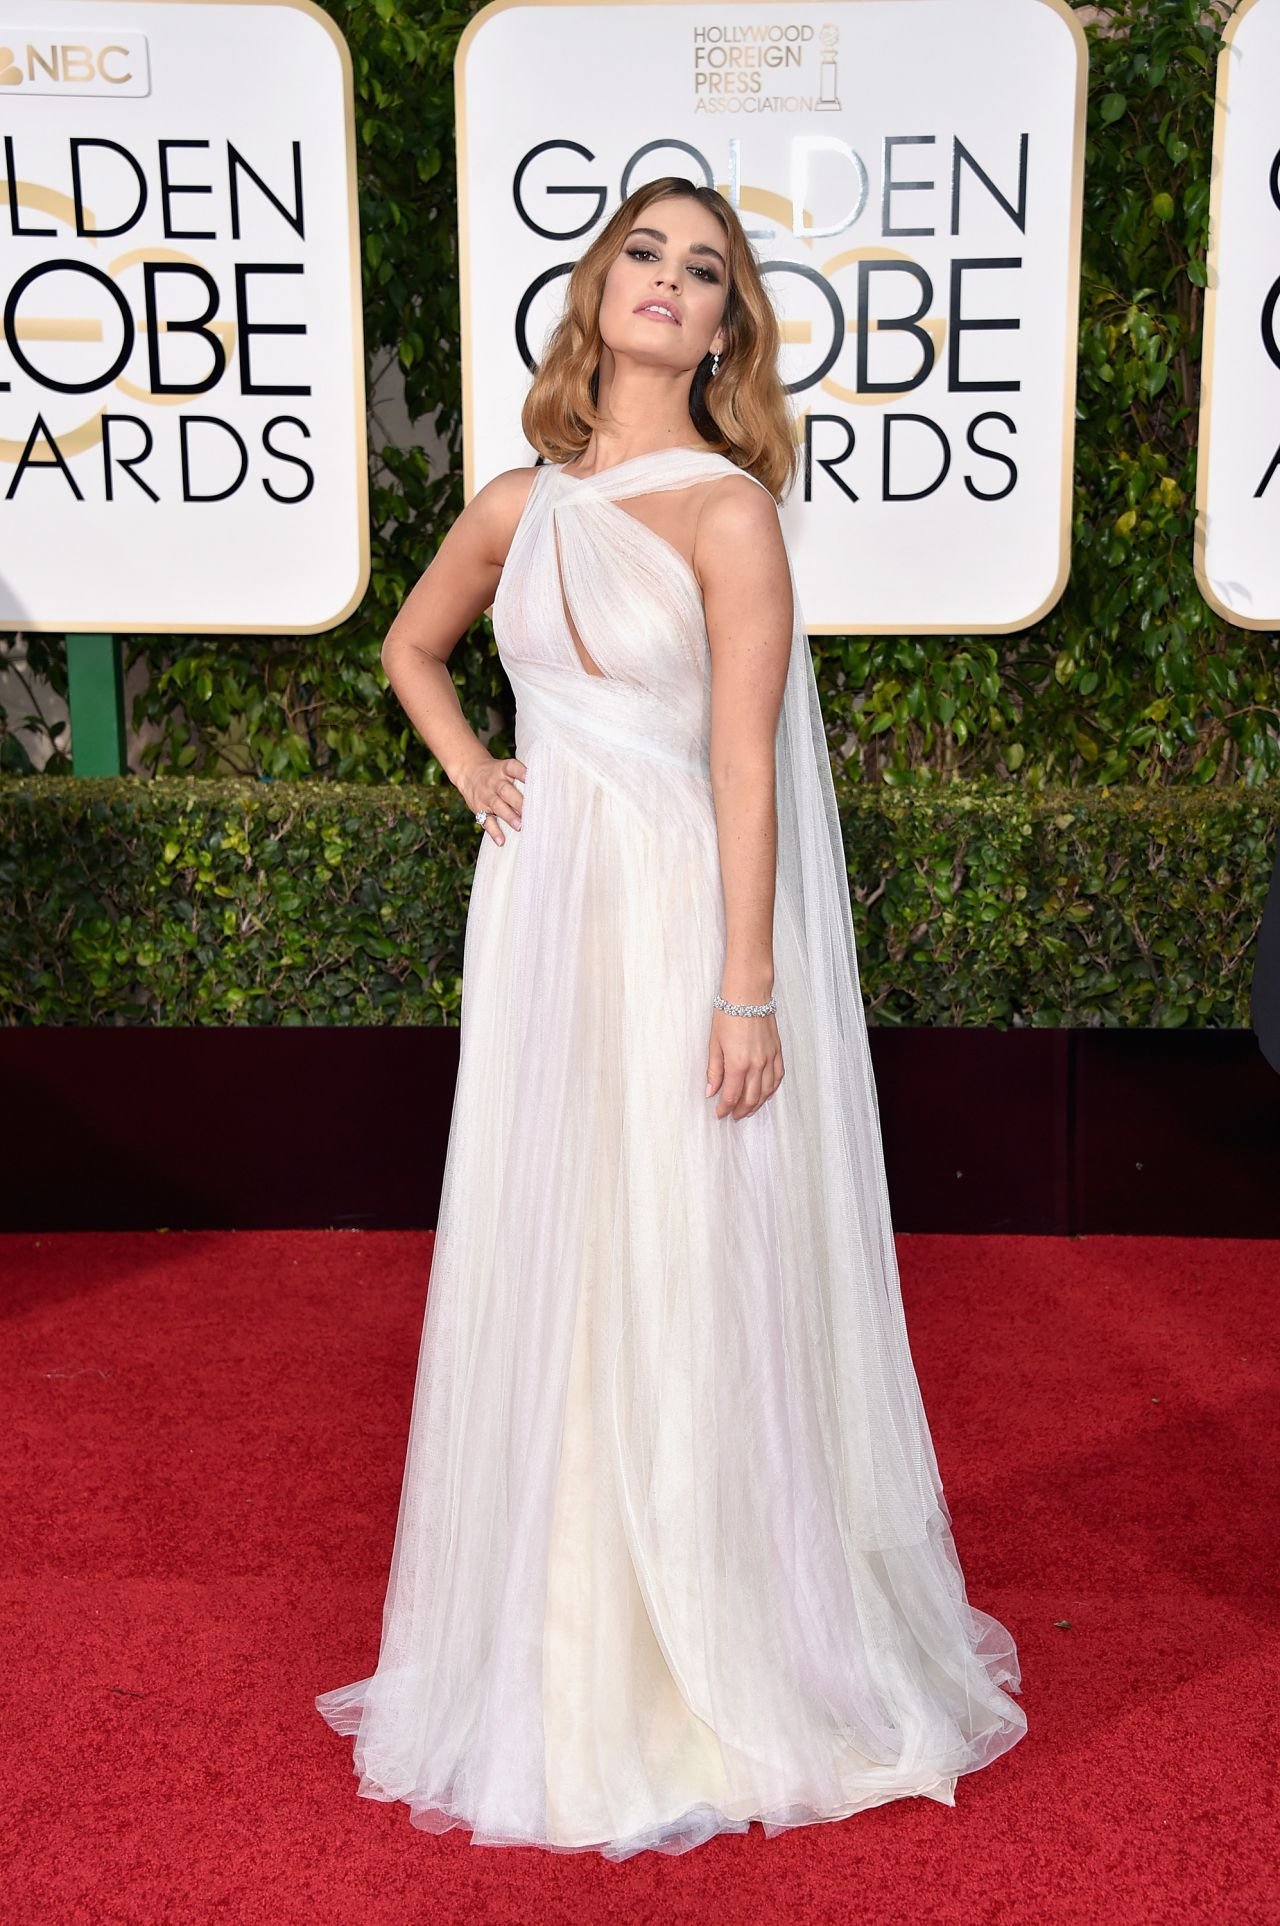 lily-james-2016-golden-globe-awards-in-beverly-hills-6